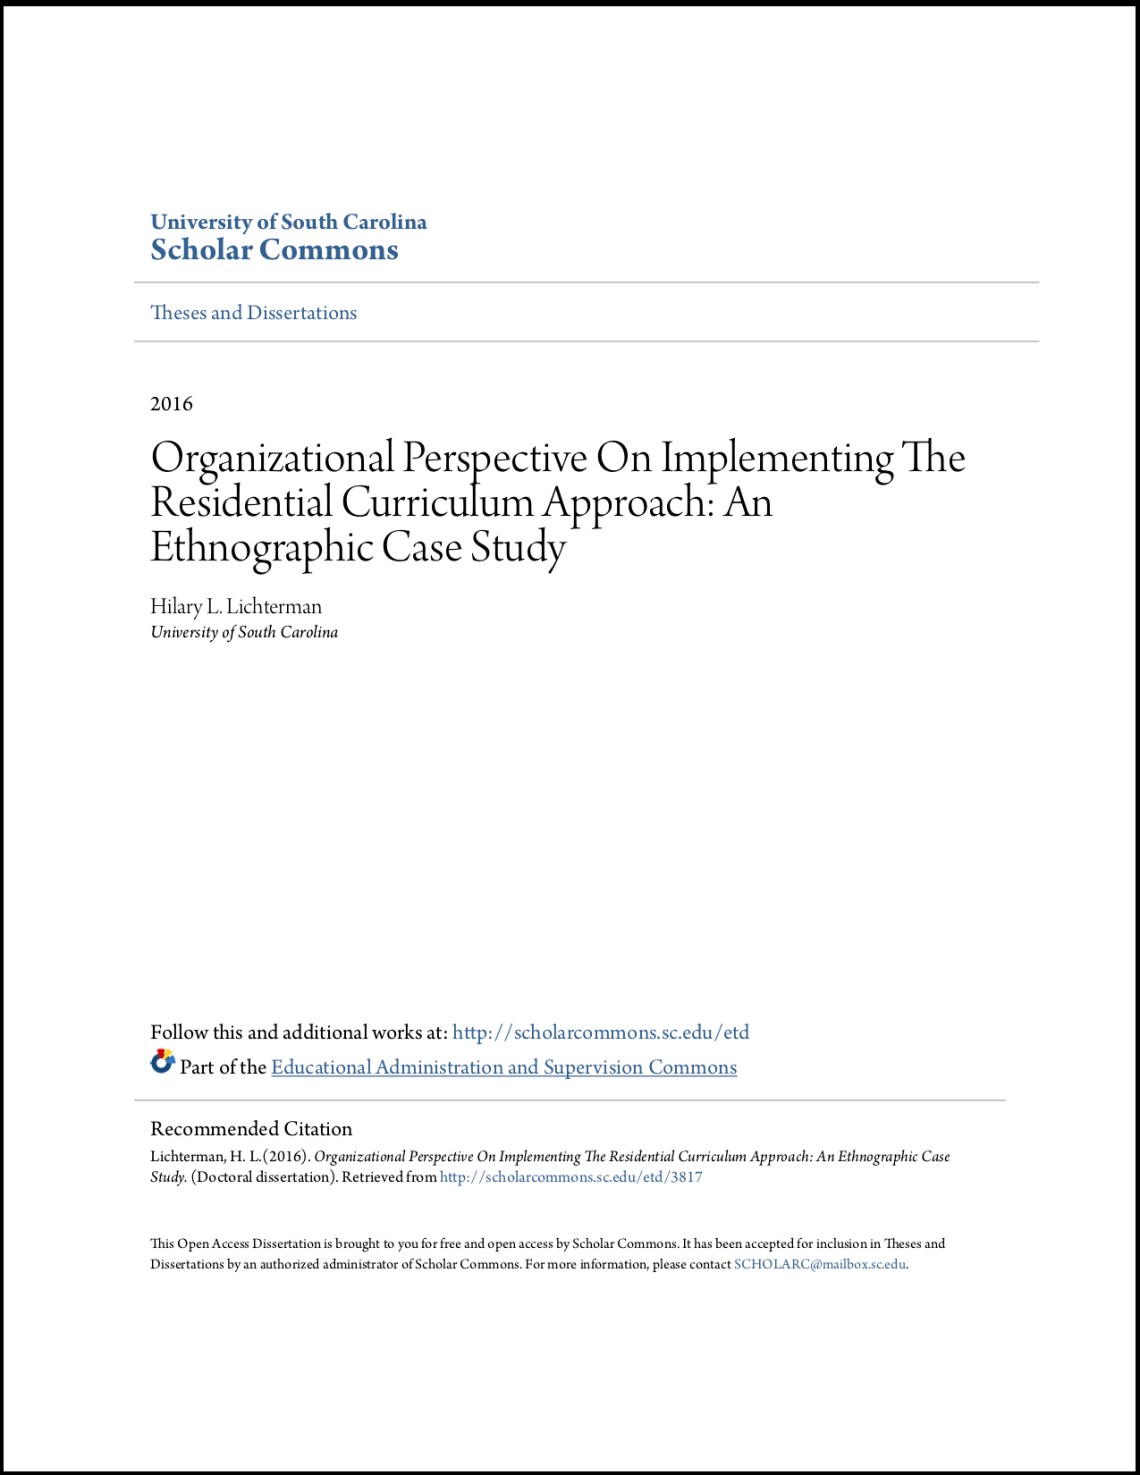 Organizational Perspective On Implementing The Residential Curriculum Approach